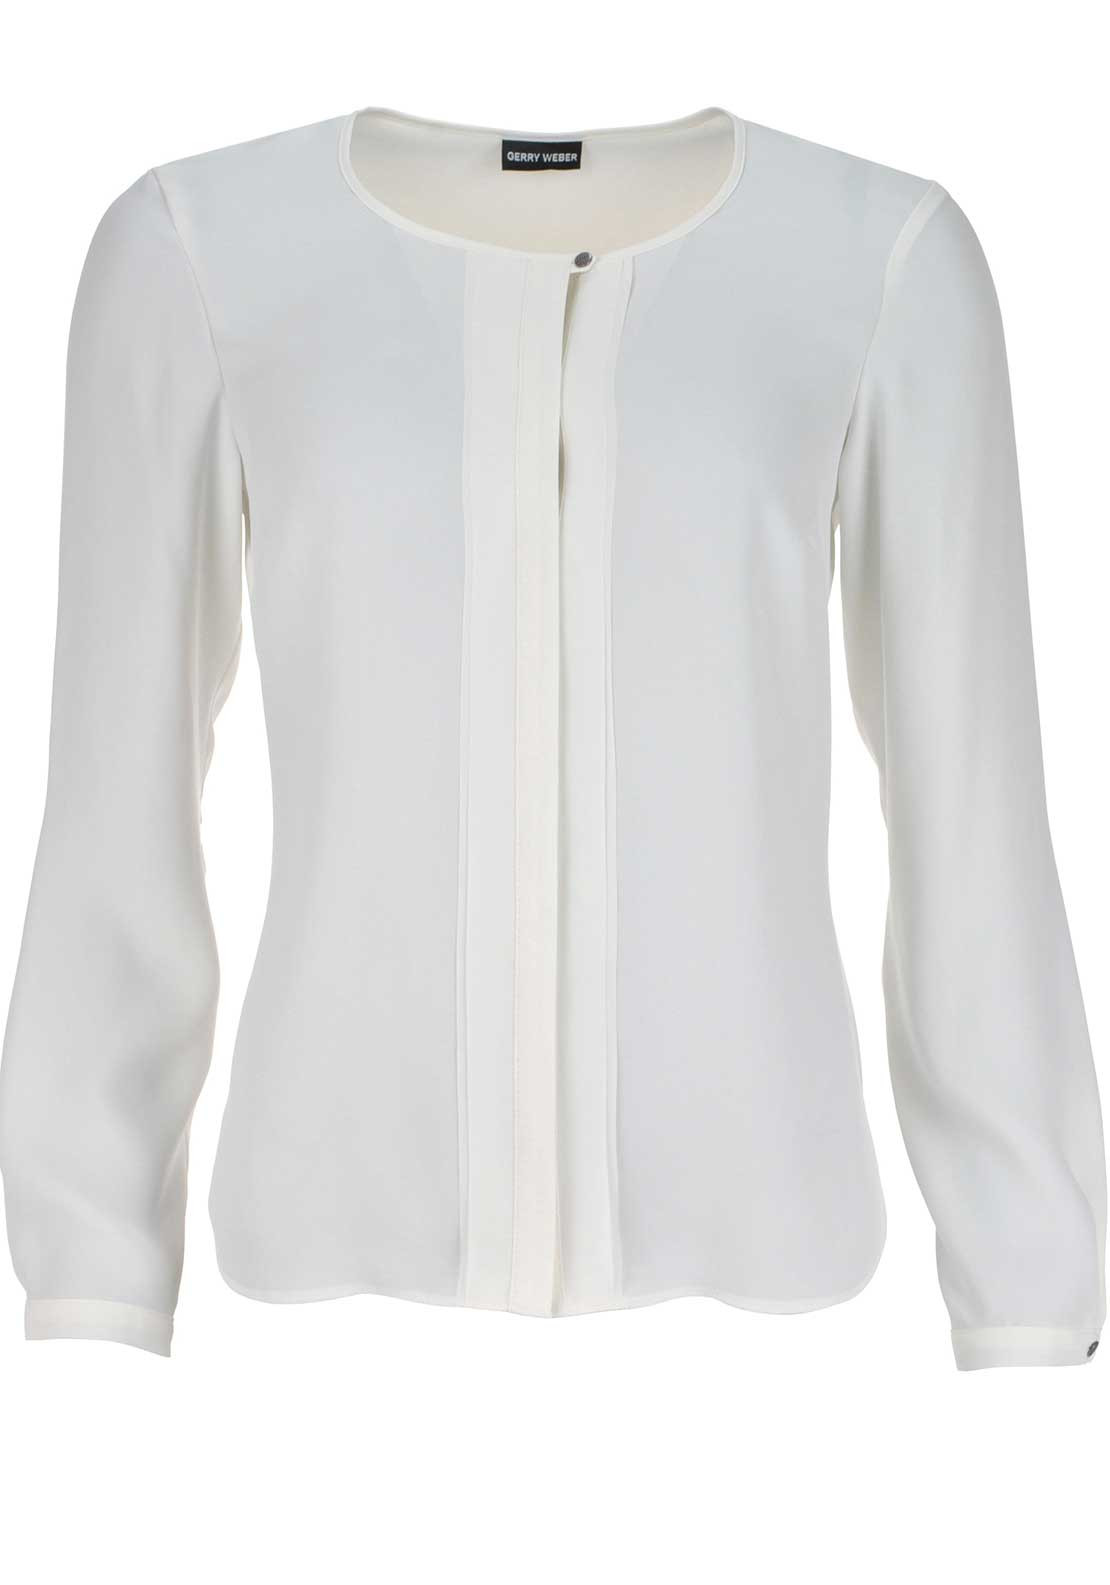 Gerry Weber Pleated Panel Long Sleeve Blouse, Ivory